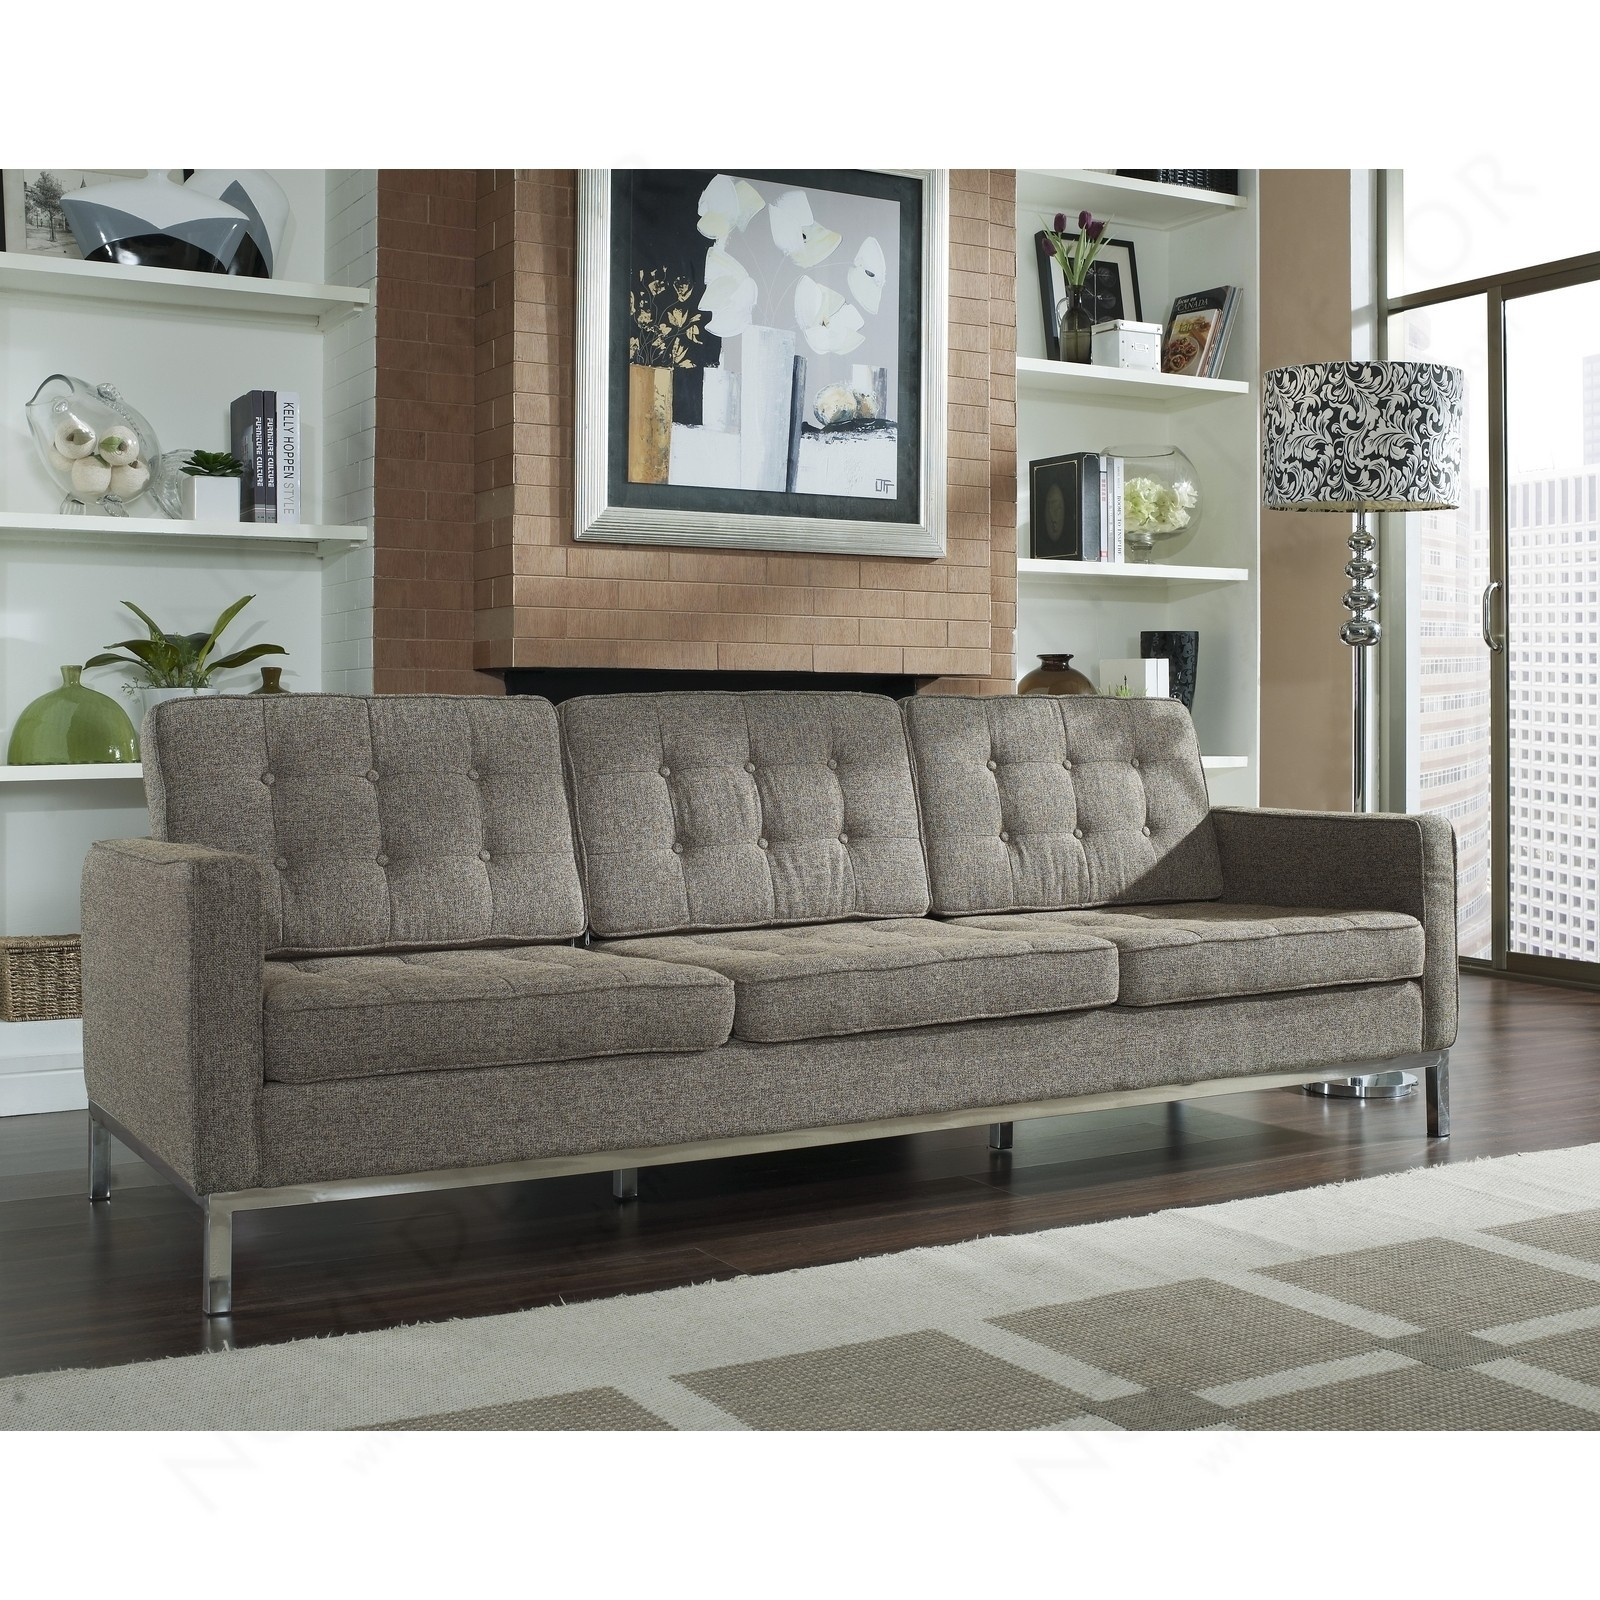 Florence Style Sofa In Wool Multiple Colors Designer Reproduction Intended For Florence Sofas (Image 6 of 15)